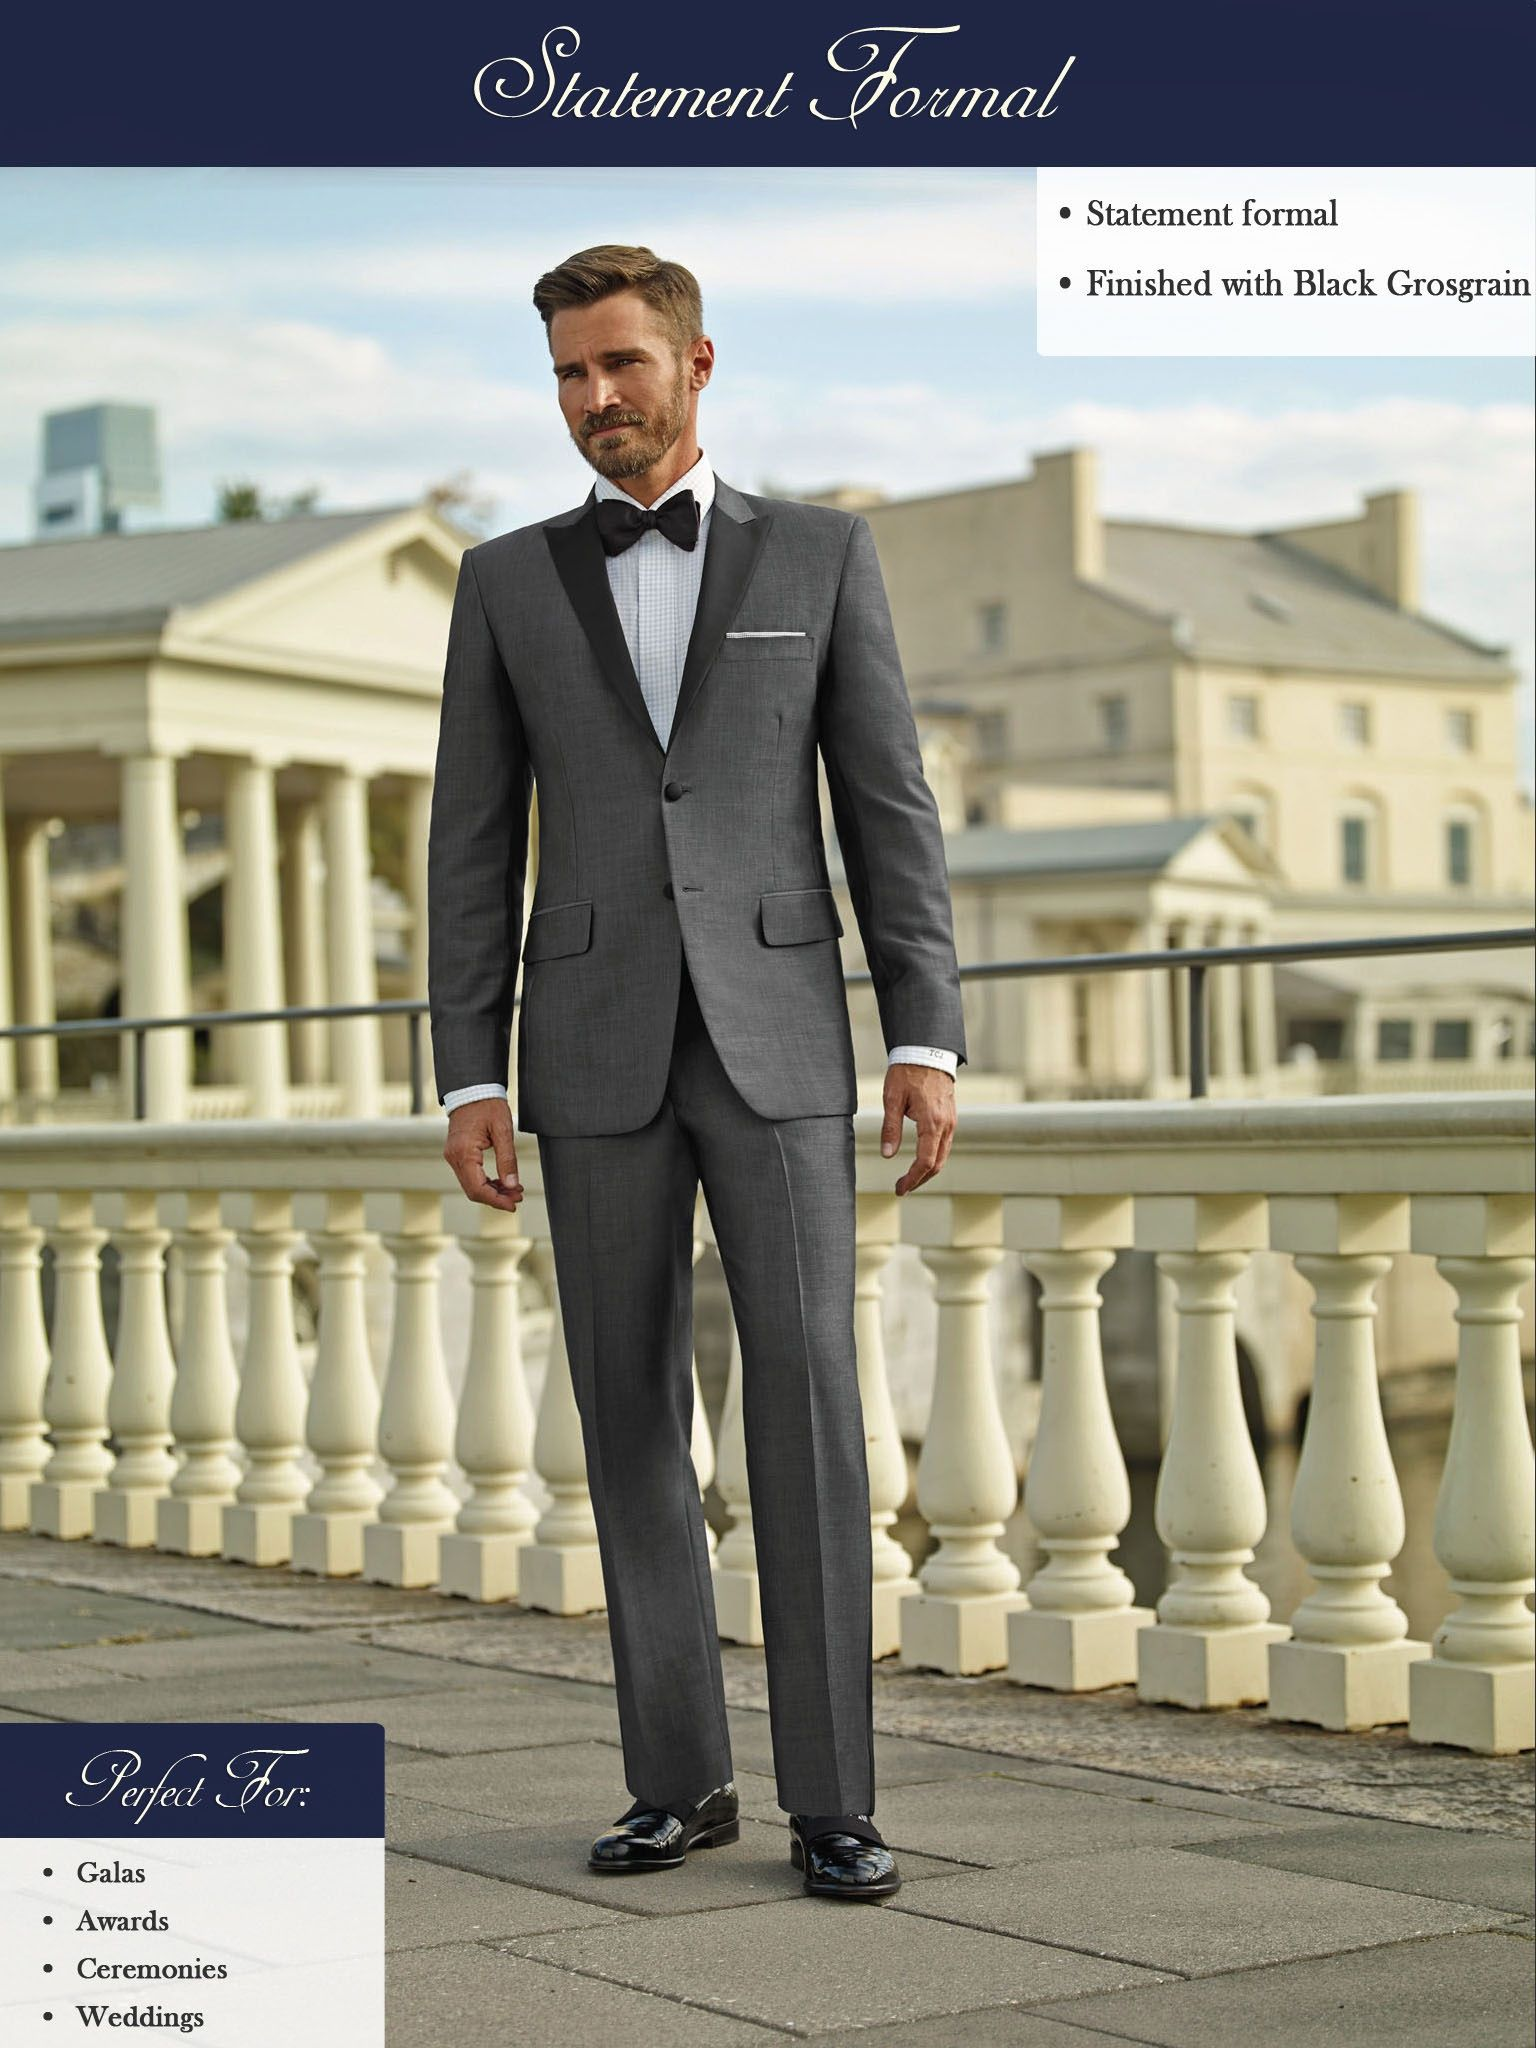 Gray sharkskin tuxedo proves it's worth for a summer event or wedding.